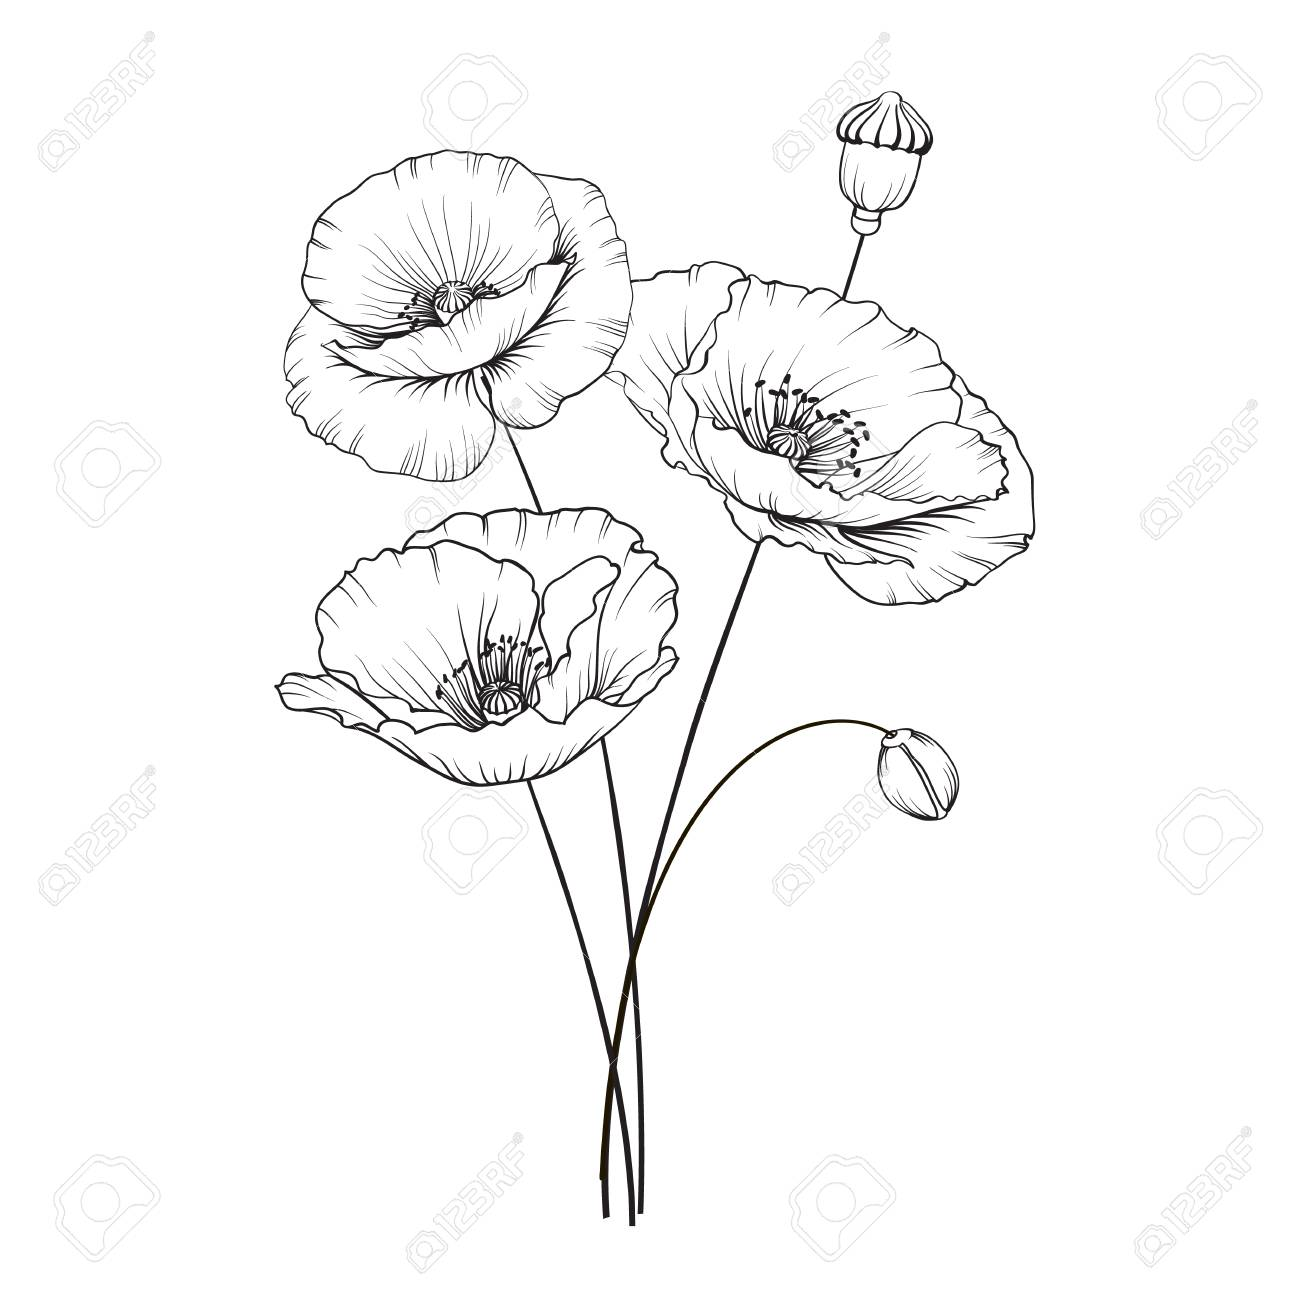 Poppies Flowers In Black And White Illustration Royalty Free